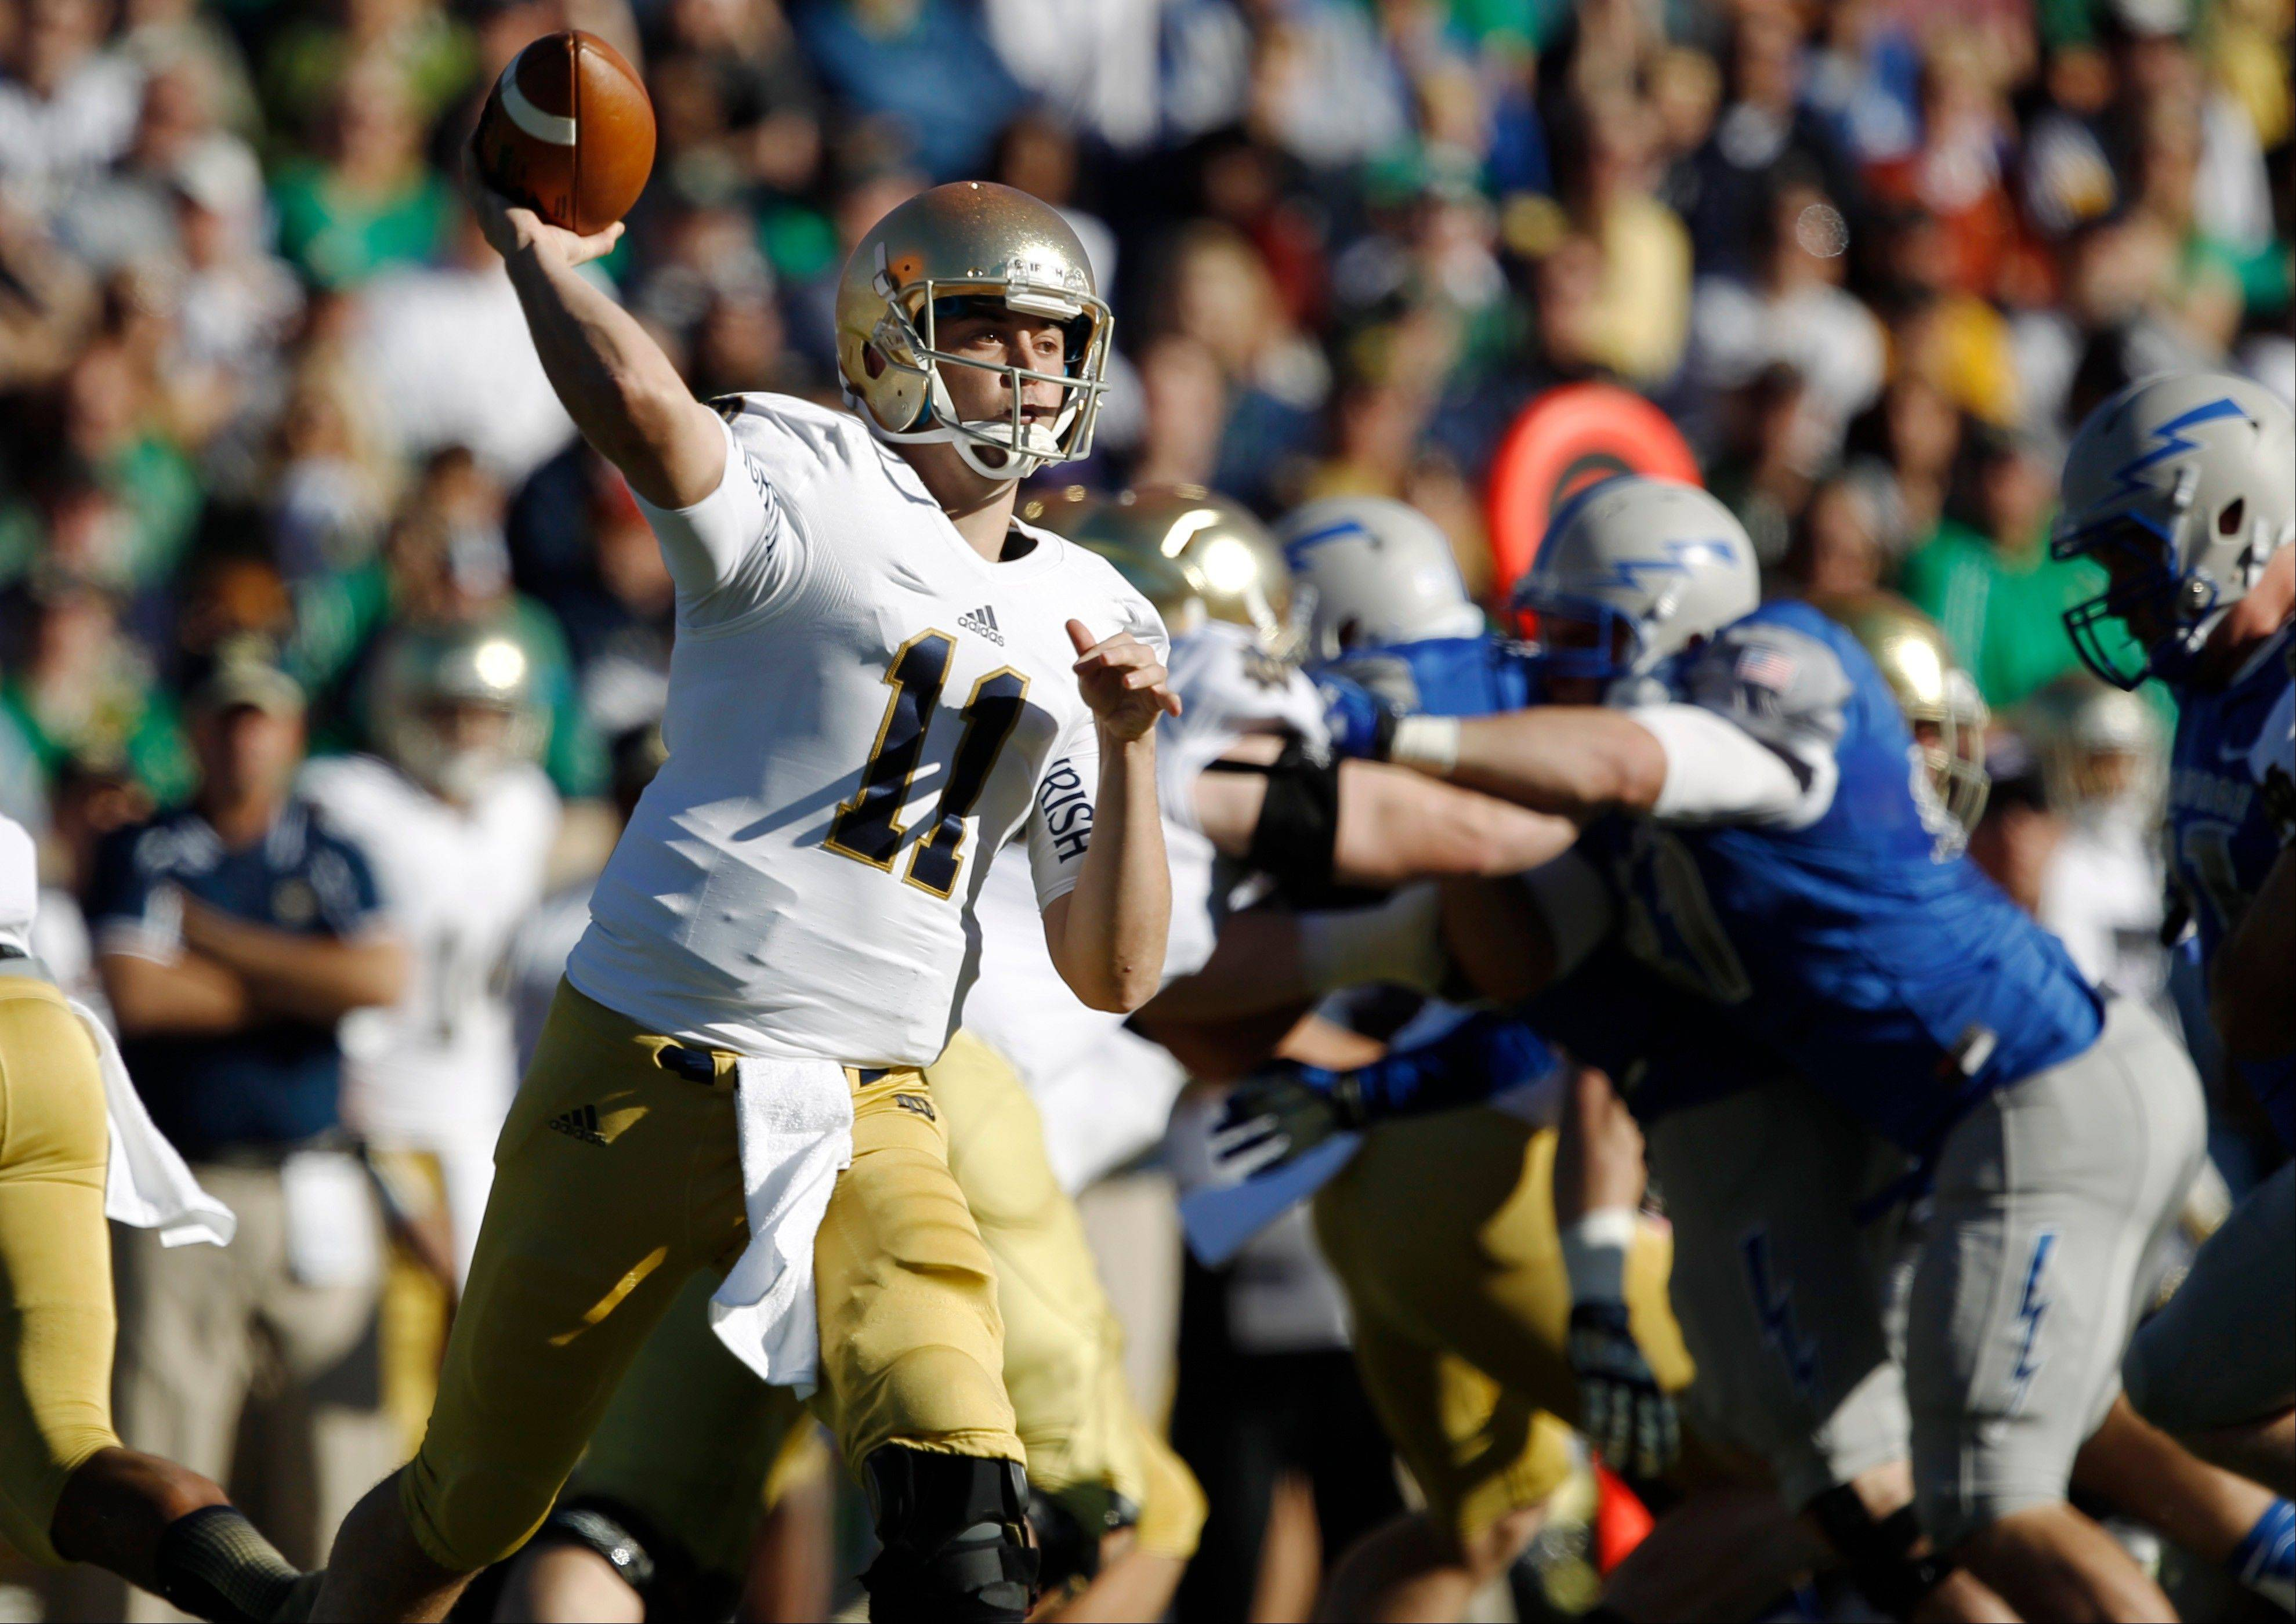 Notre Dame quarterback Tommy Rees passes against Air Force during Saturday's road win. With Notre Dame (6-2) trying to make a push for a BCS bowl berth, Rees seems to have regained his touch.